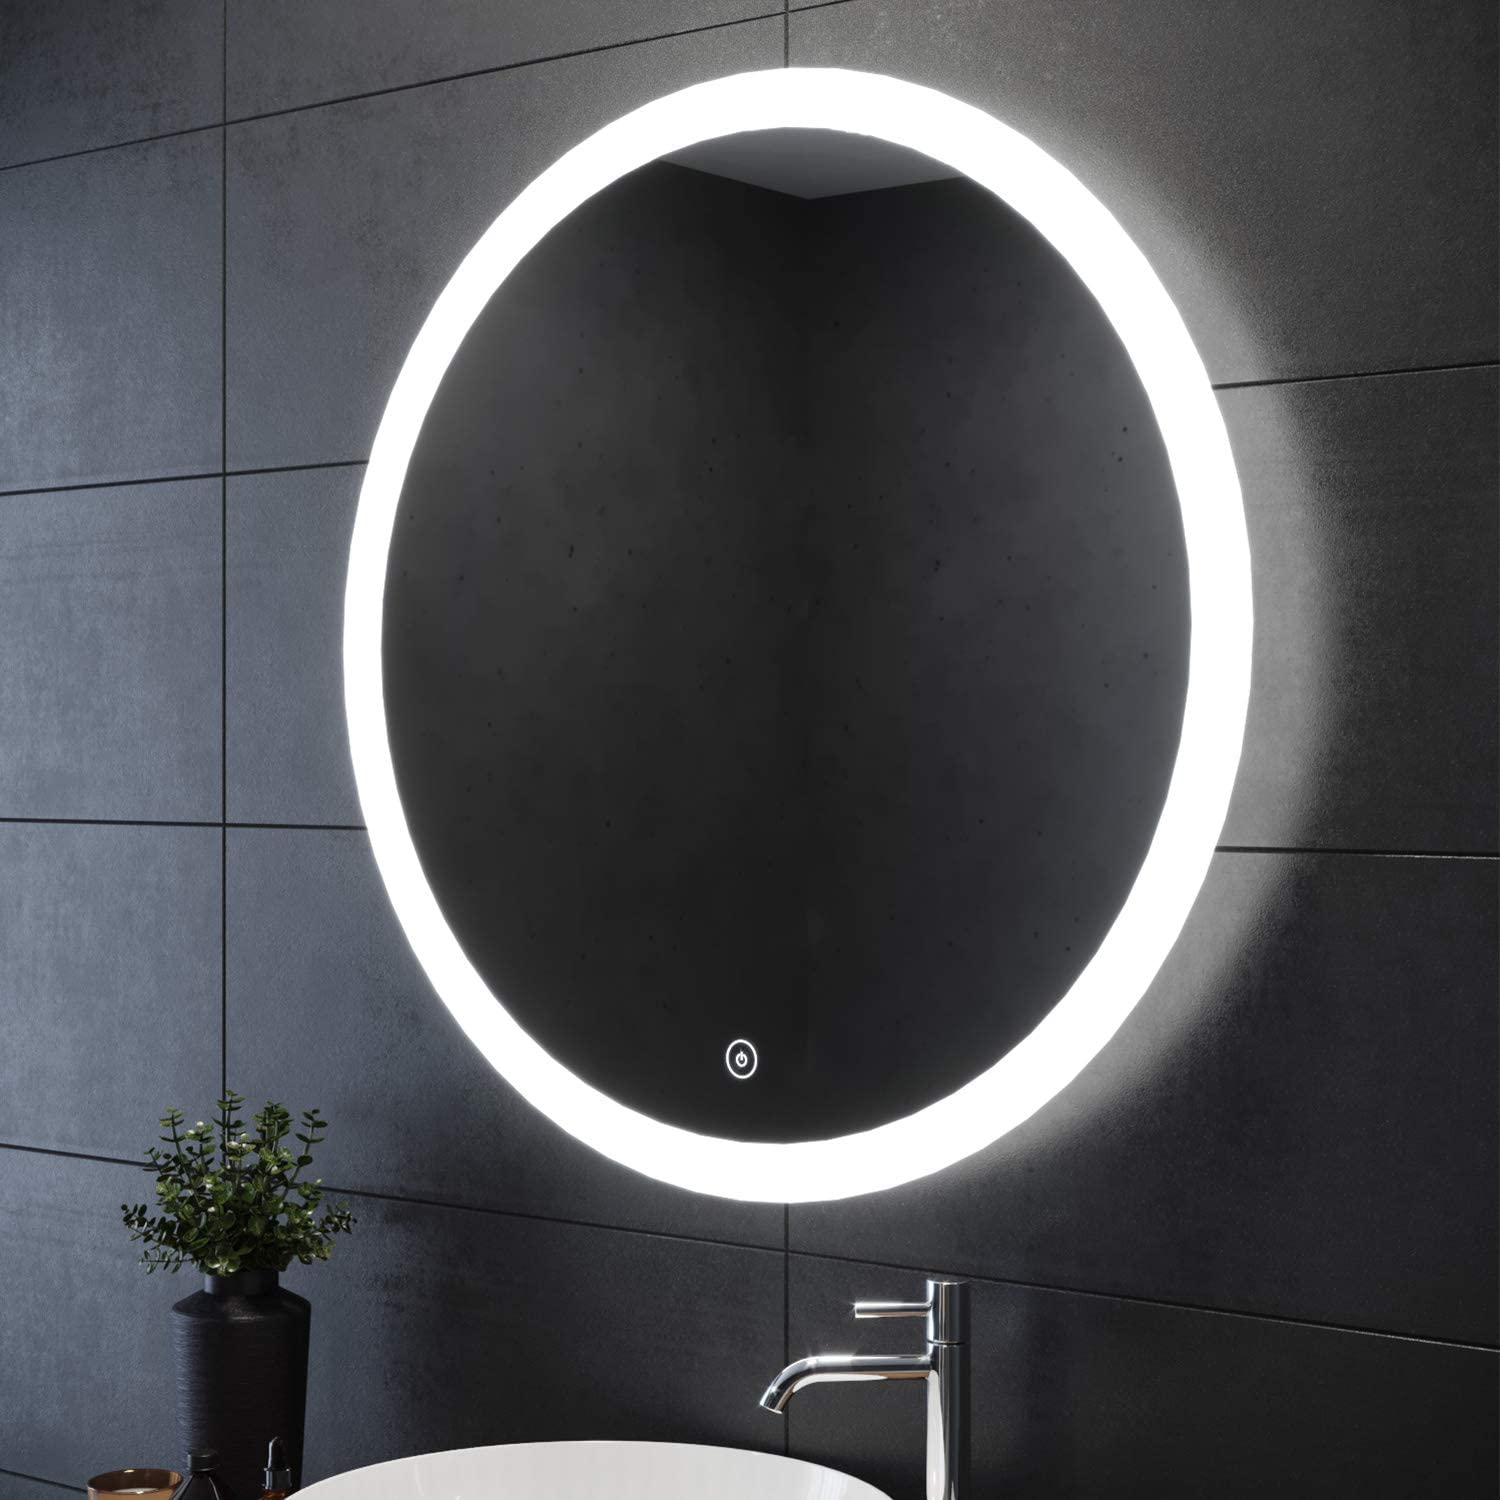 Elegant 24 in Bathroom Vanity Circle Mirror with Lights Wall Mounted LED Anti-Fog Natural White Round Frameless Wall Mirror Touch Switch